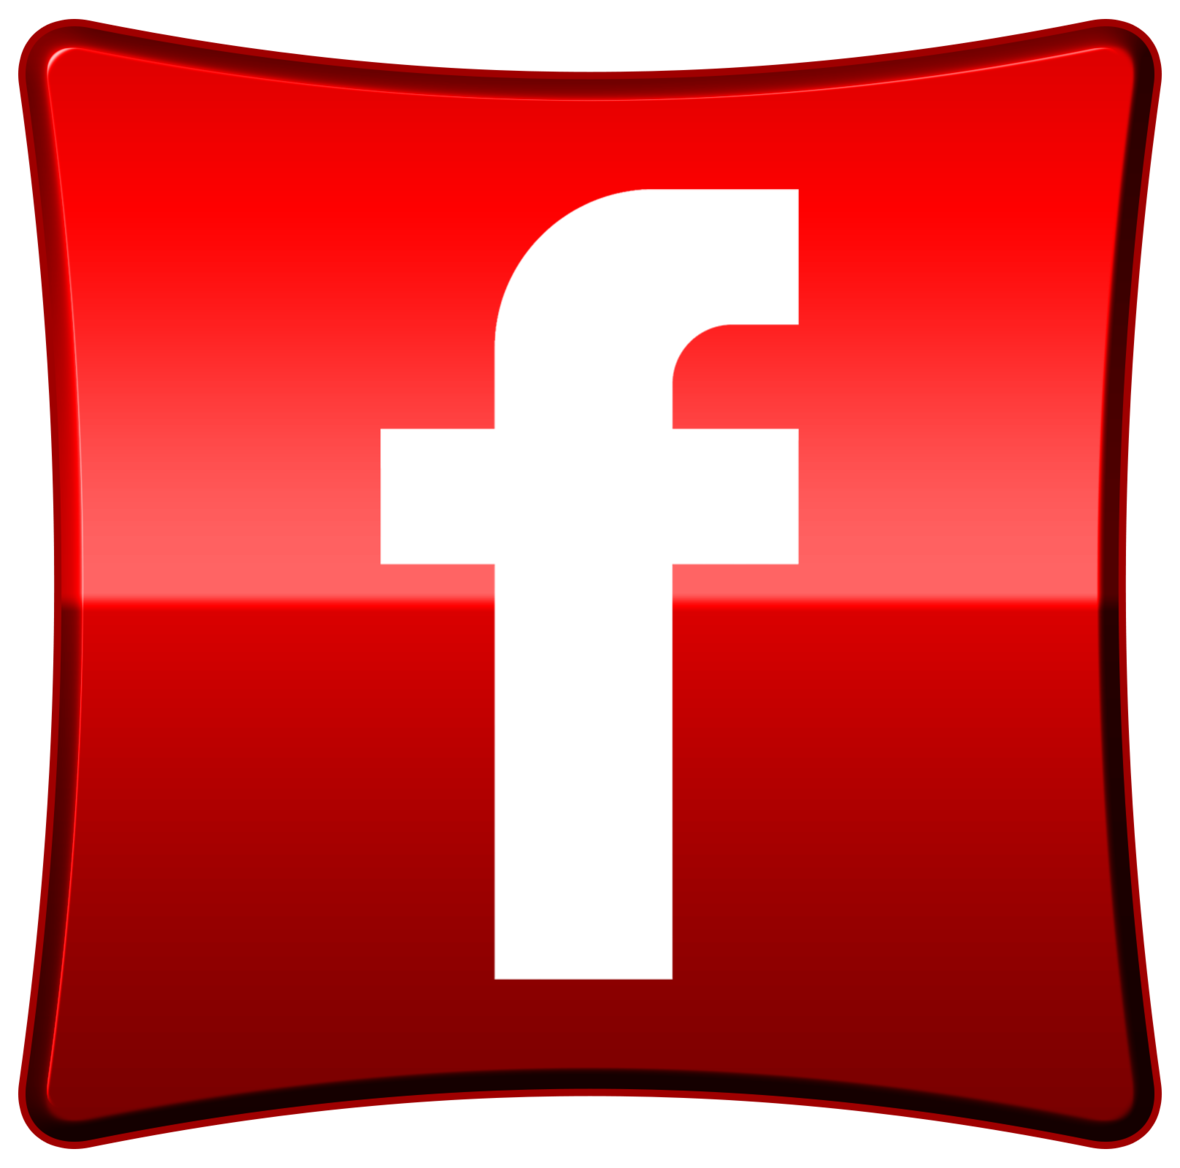 RedFacebookButton